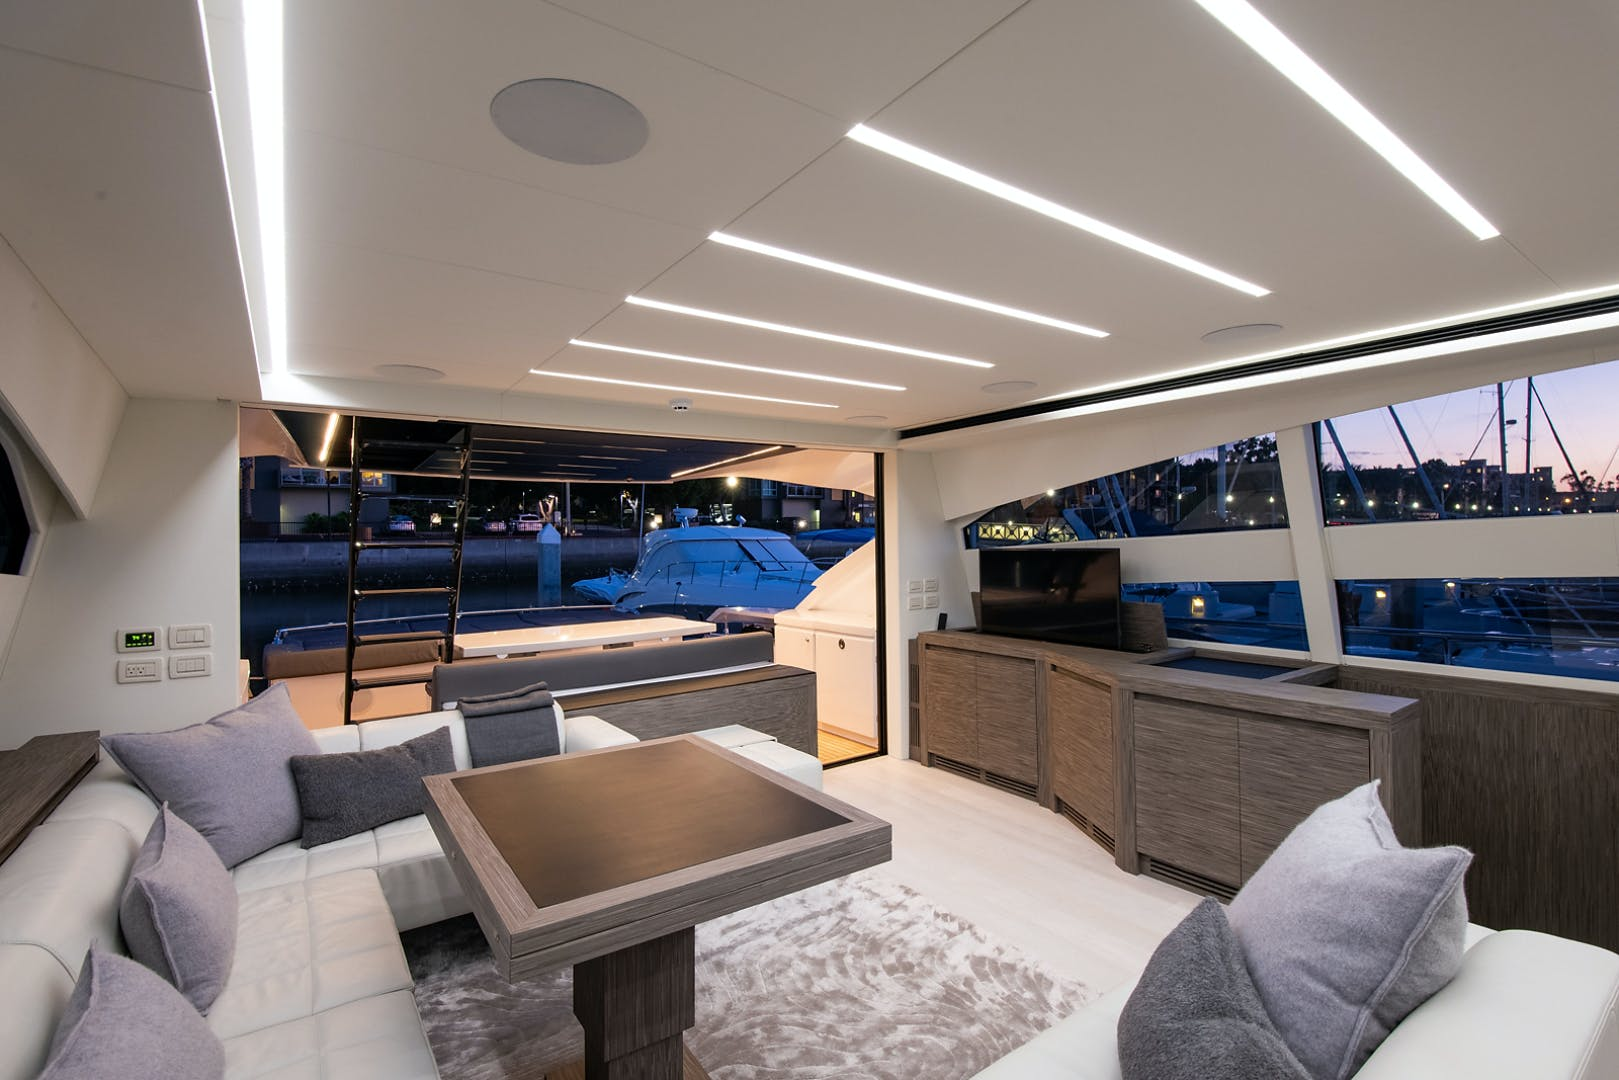 2017 Pershing 82' Pershing 82 Double or Nothing   Picture 1 of 41